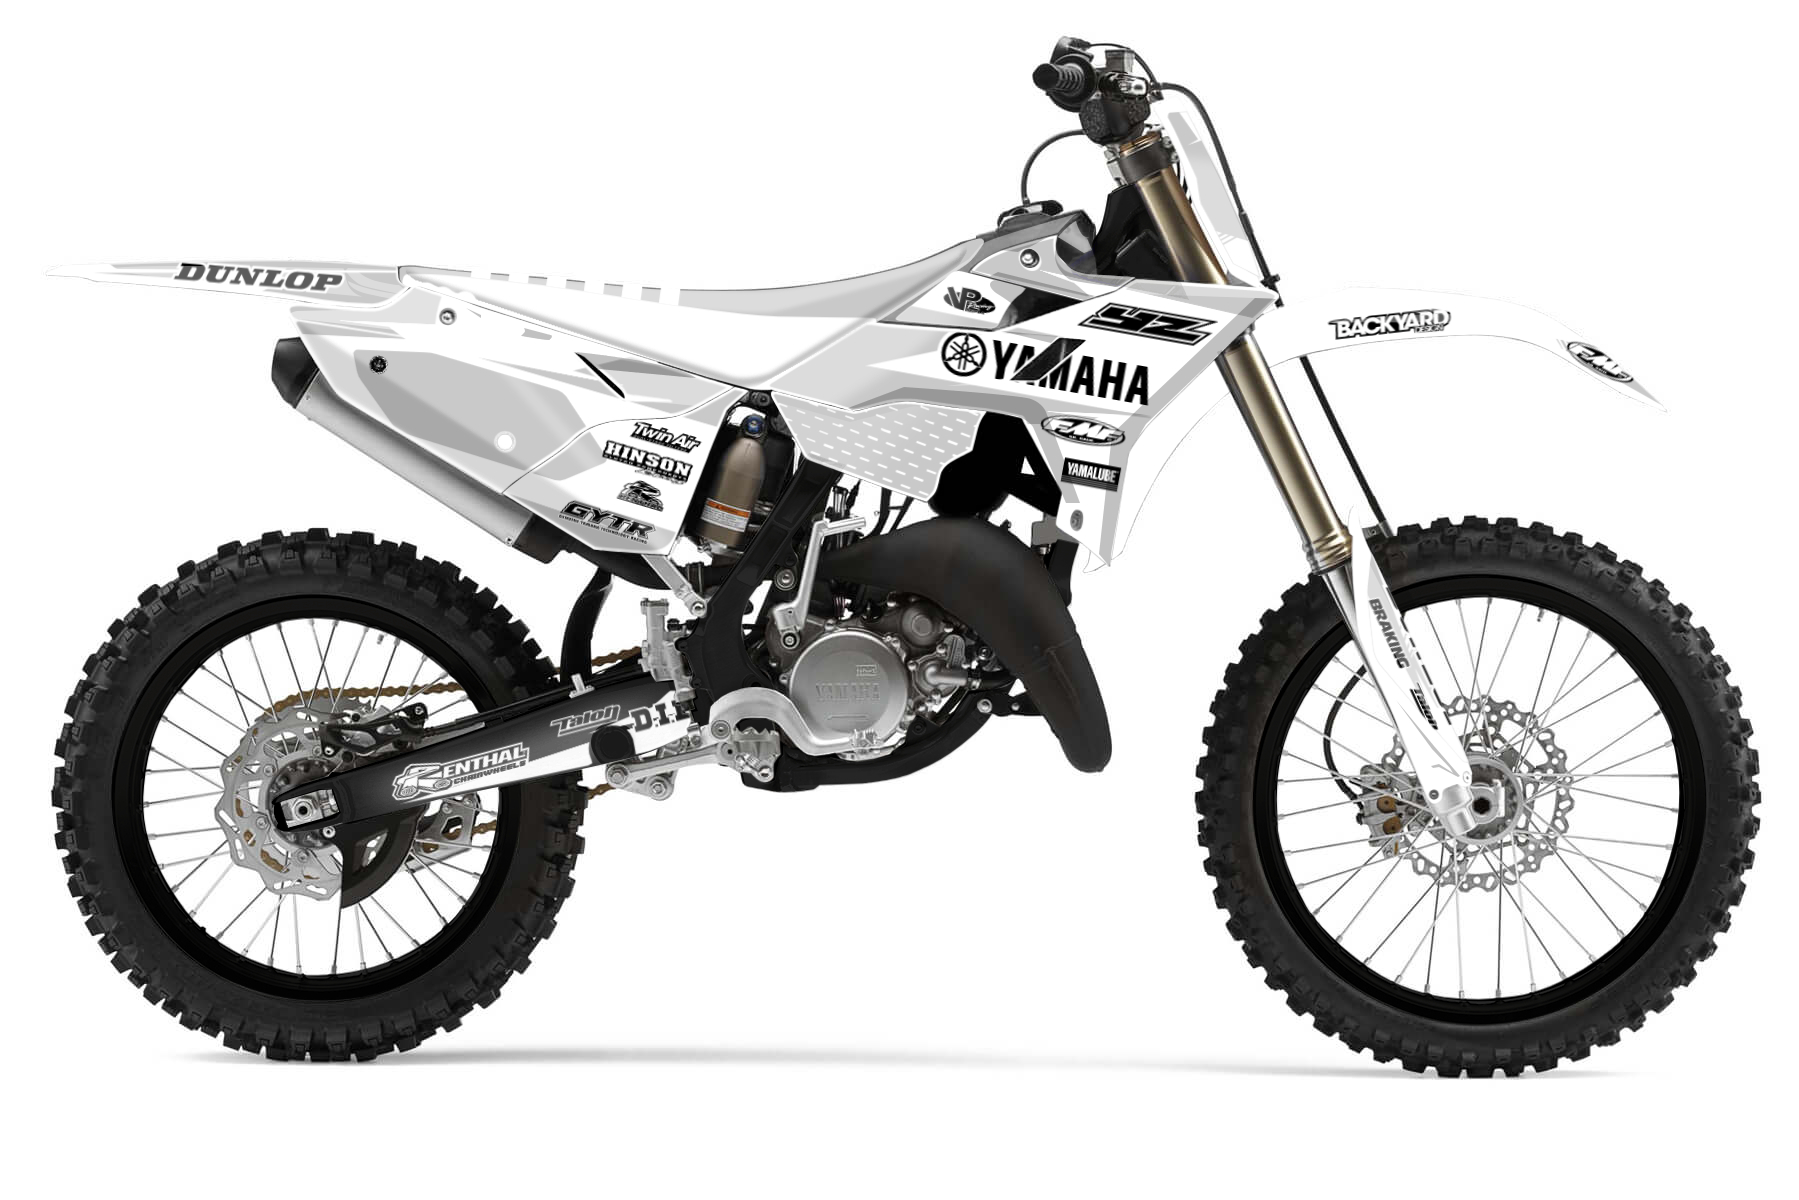 Yamaha YZ 125 – Racetech Revolution MX Graphic Kits  The Racetech Revolution plastic kit makes your Yamaha YZ 125 look even more aggressive and competitive. You got to love the style that matches perfectly with the bodywork of the bike